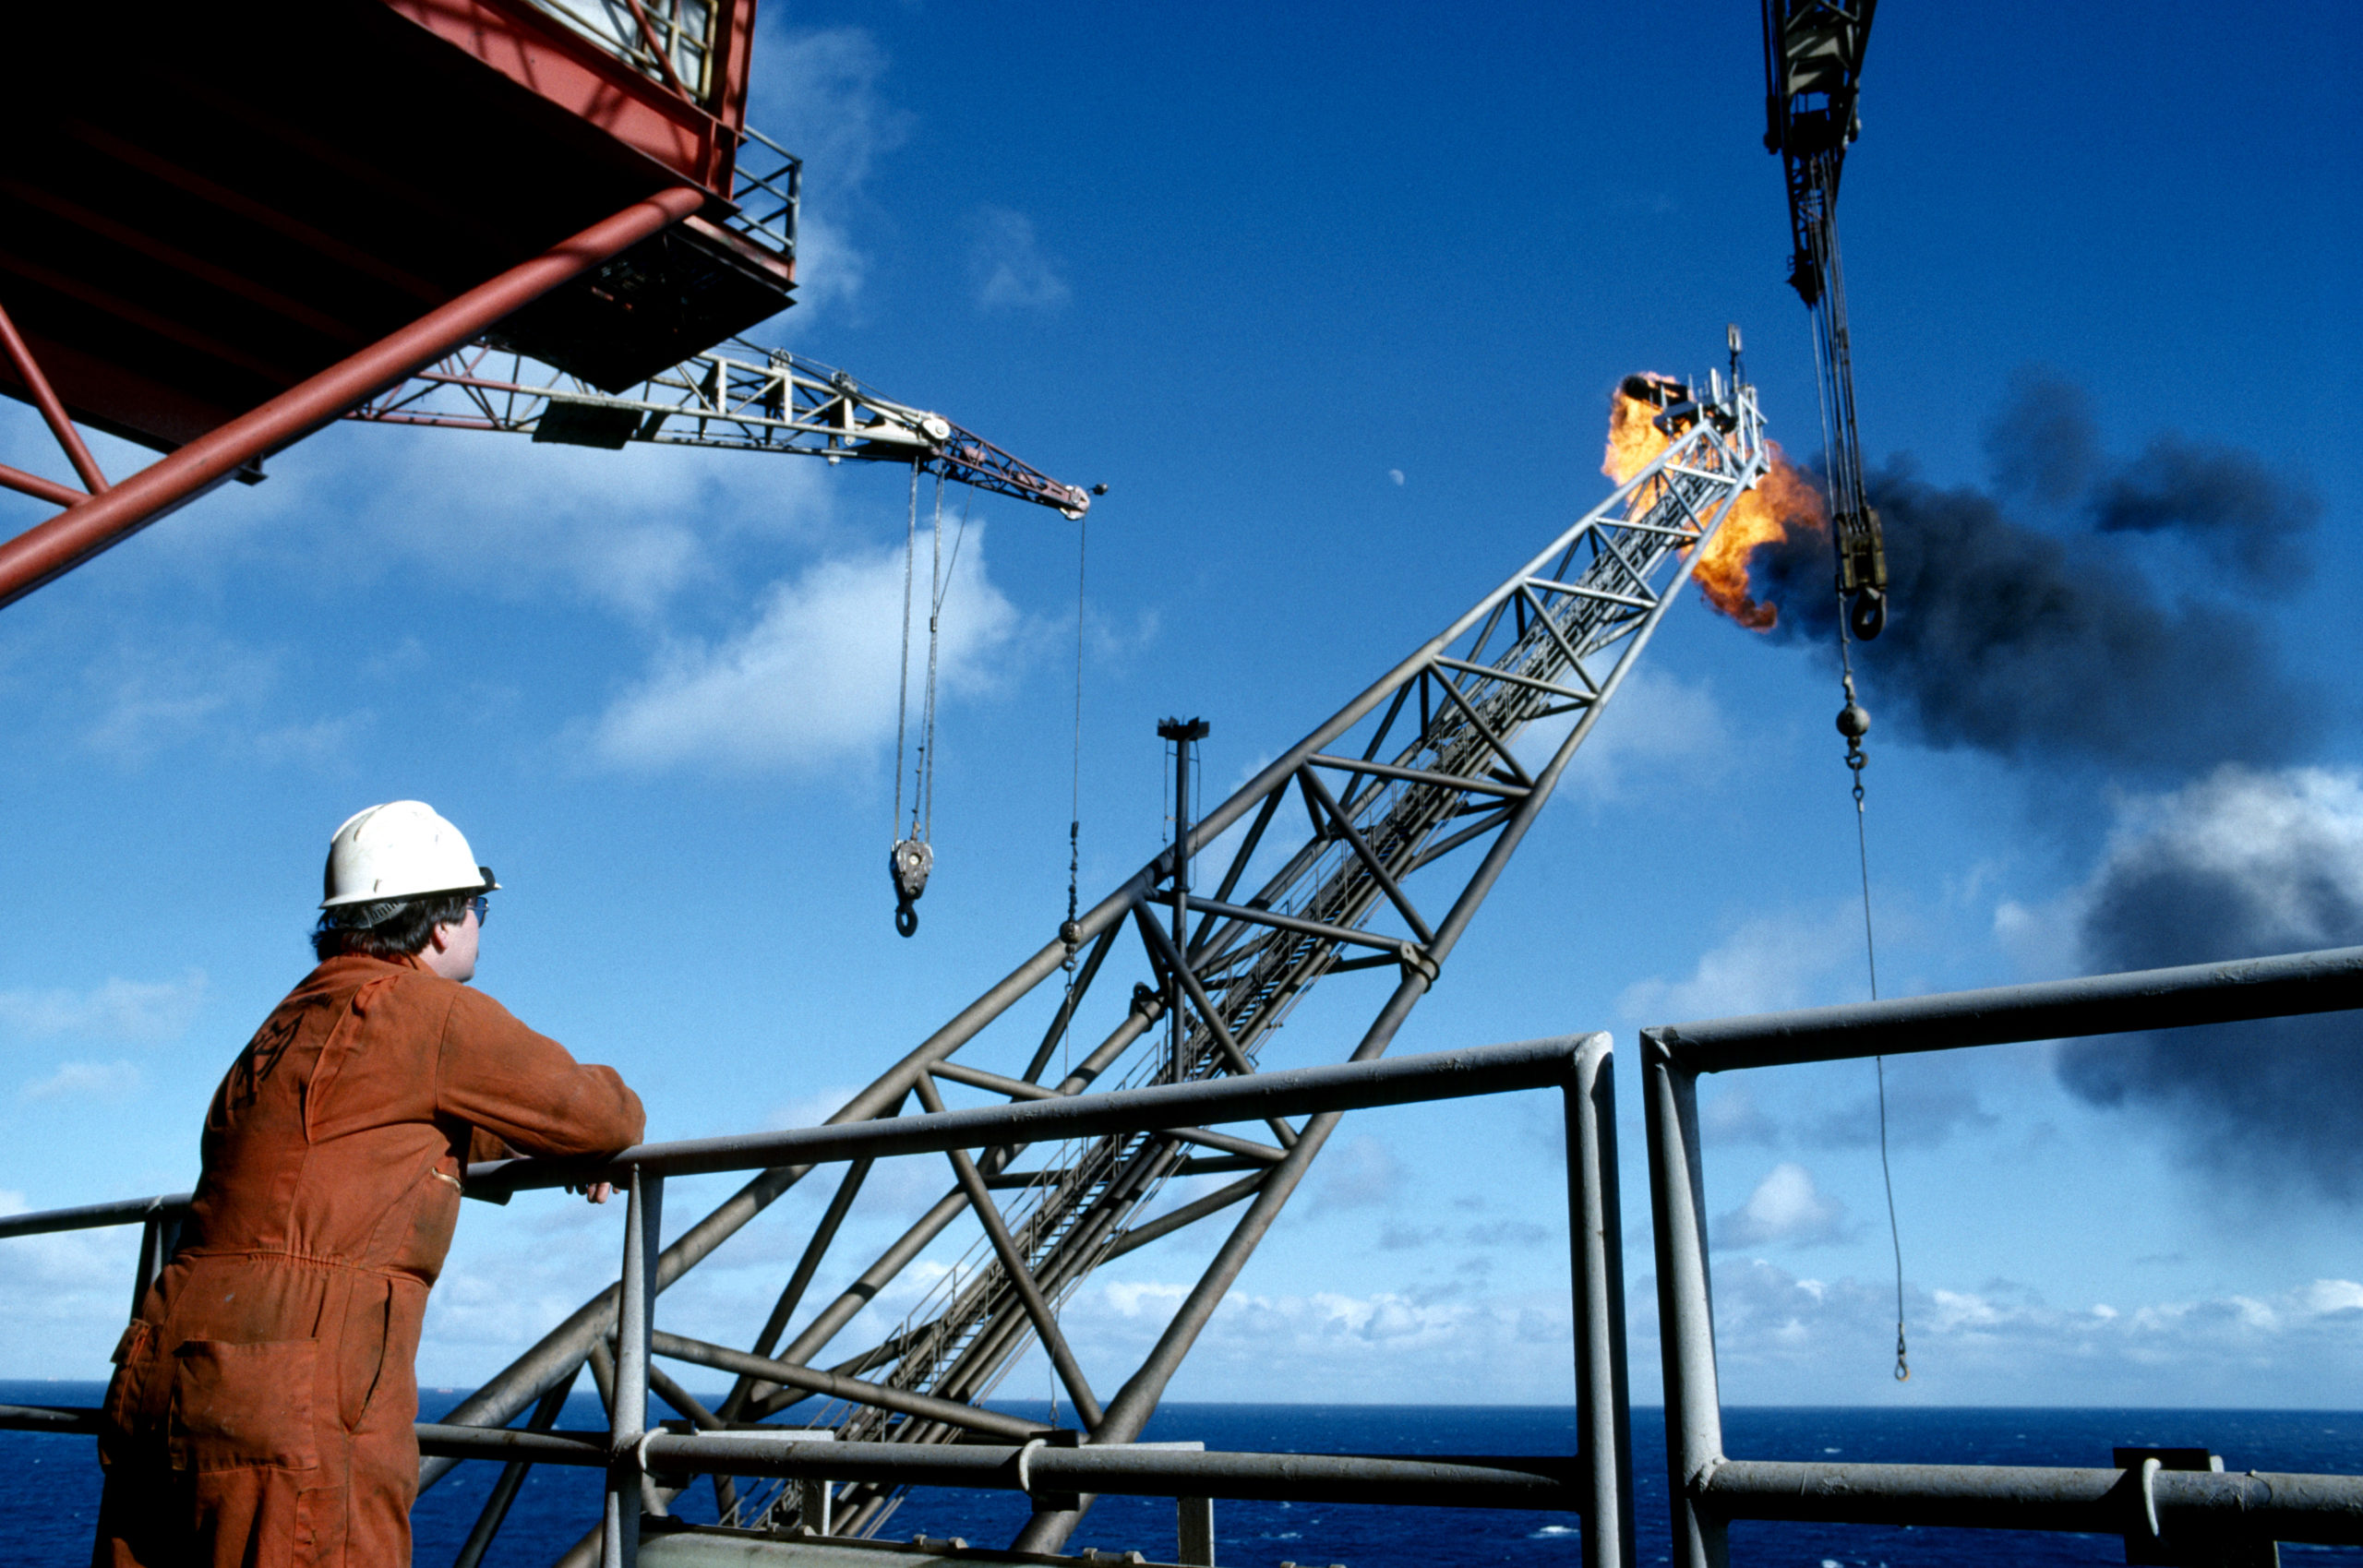 A worker on a North Sea oil drilling platform.